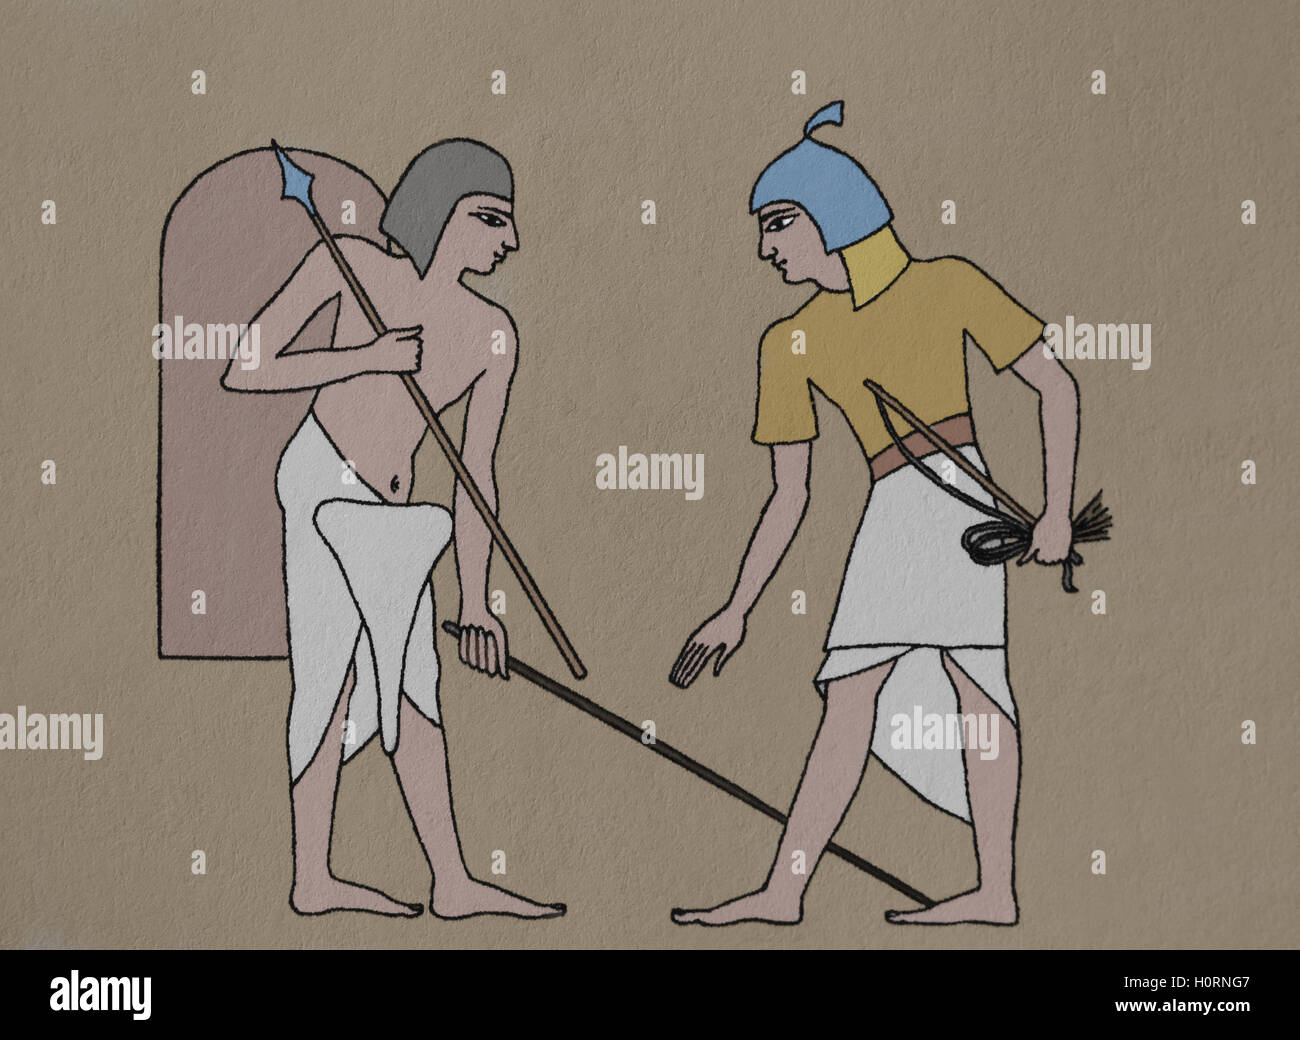 Ancient Egypt. Soldiers. Engraving. Color. 19th century. - Stock Image